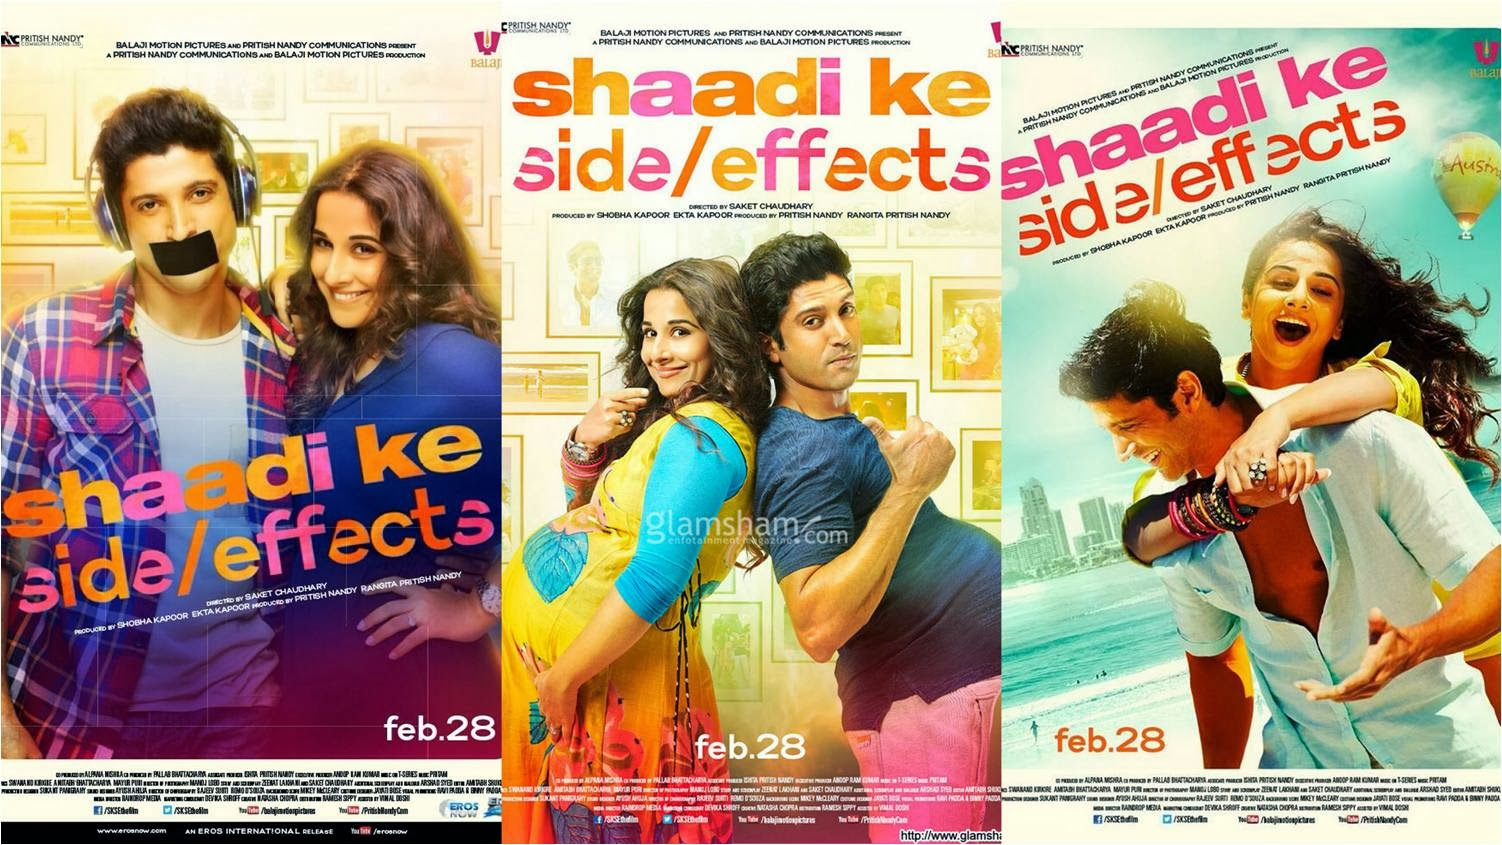 Farhan Akhtar and Vidya Balan in official posters of Shadi Ke Side Effects movie